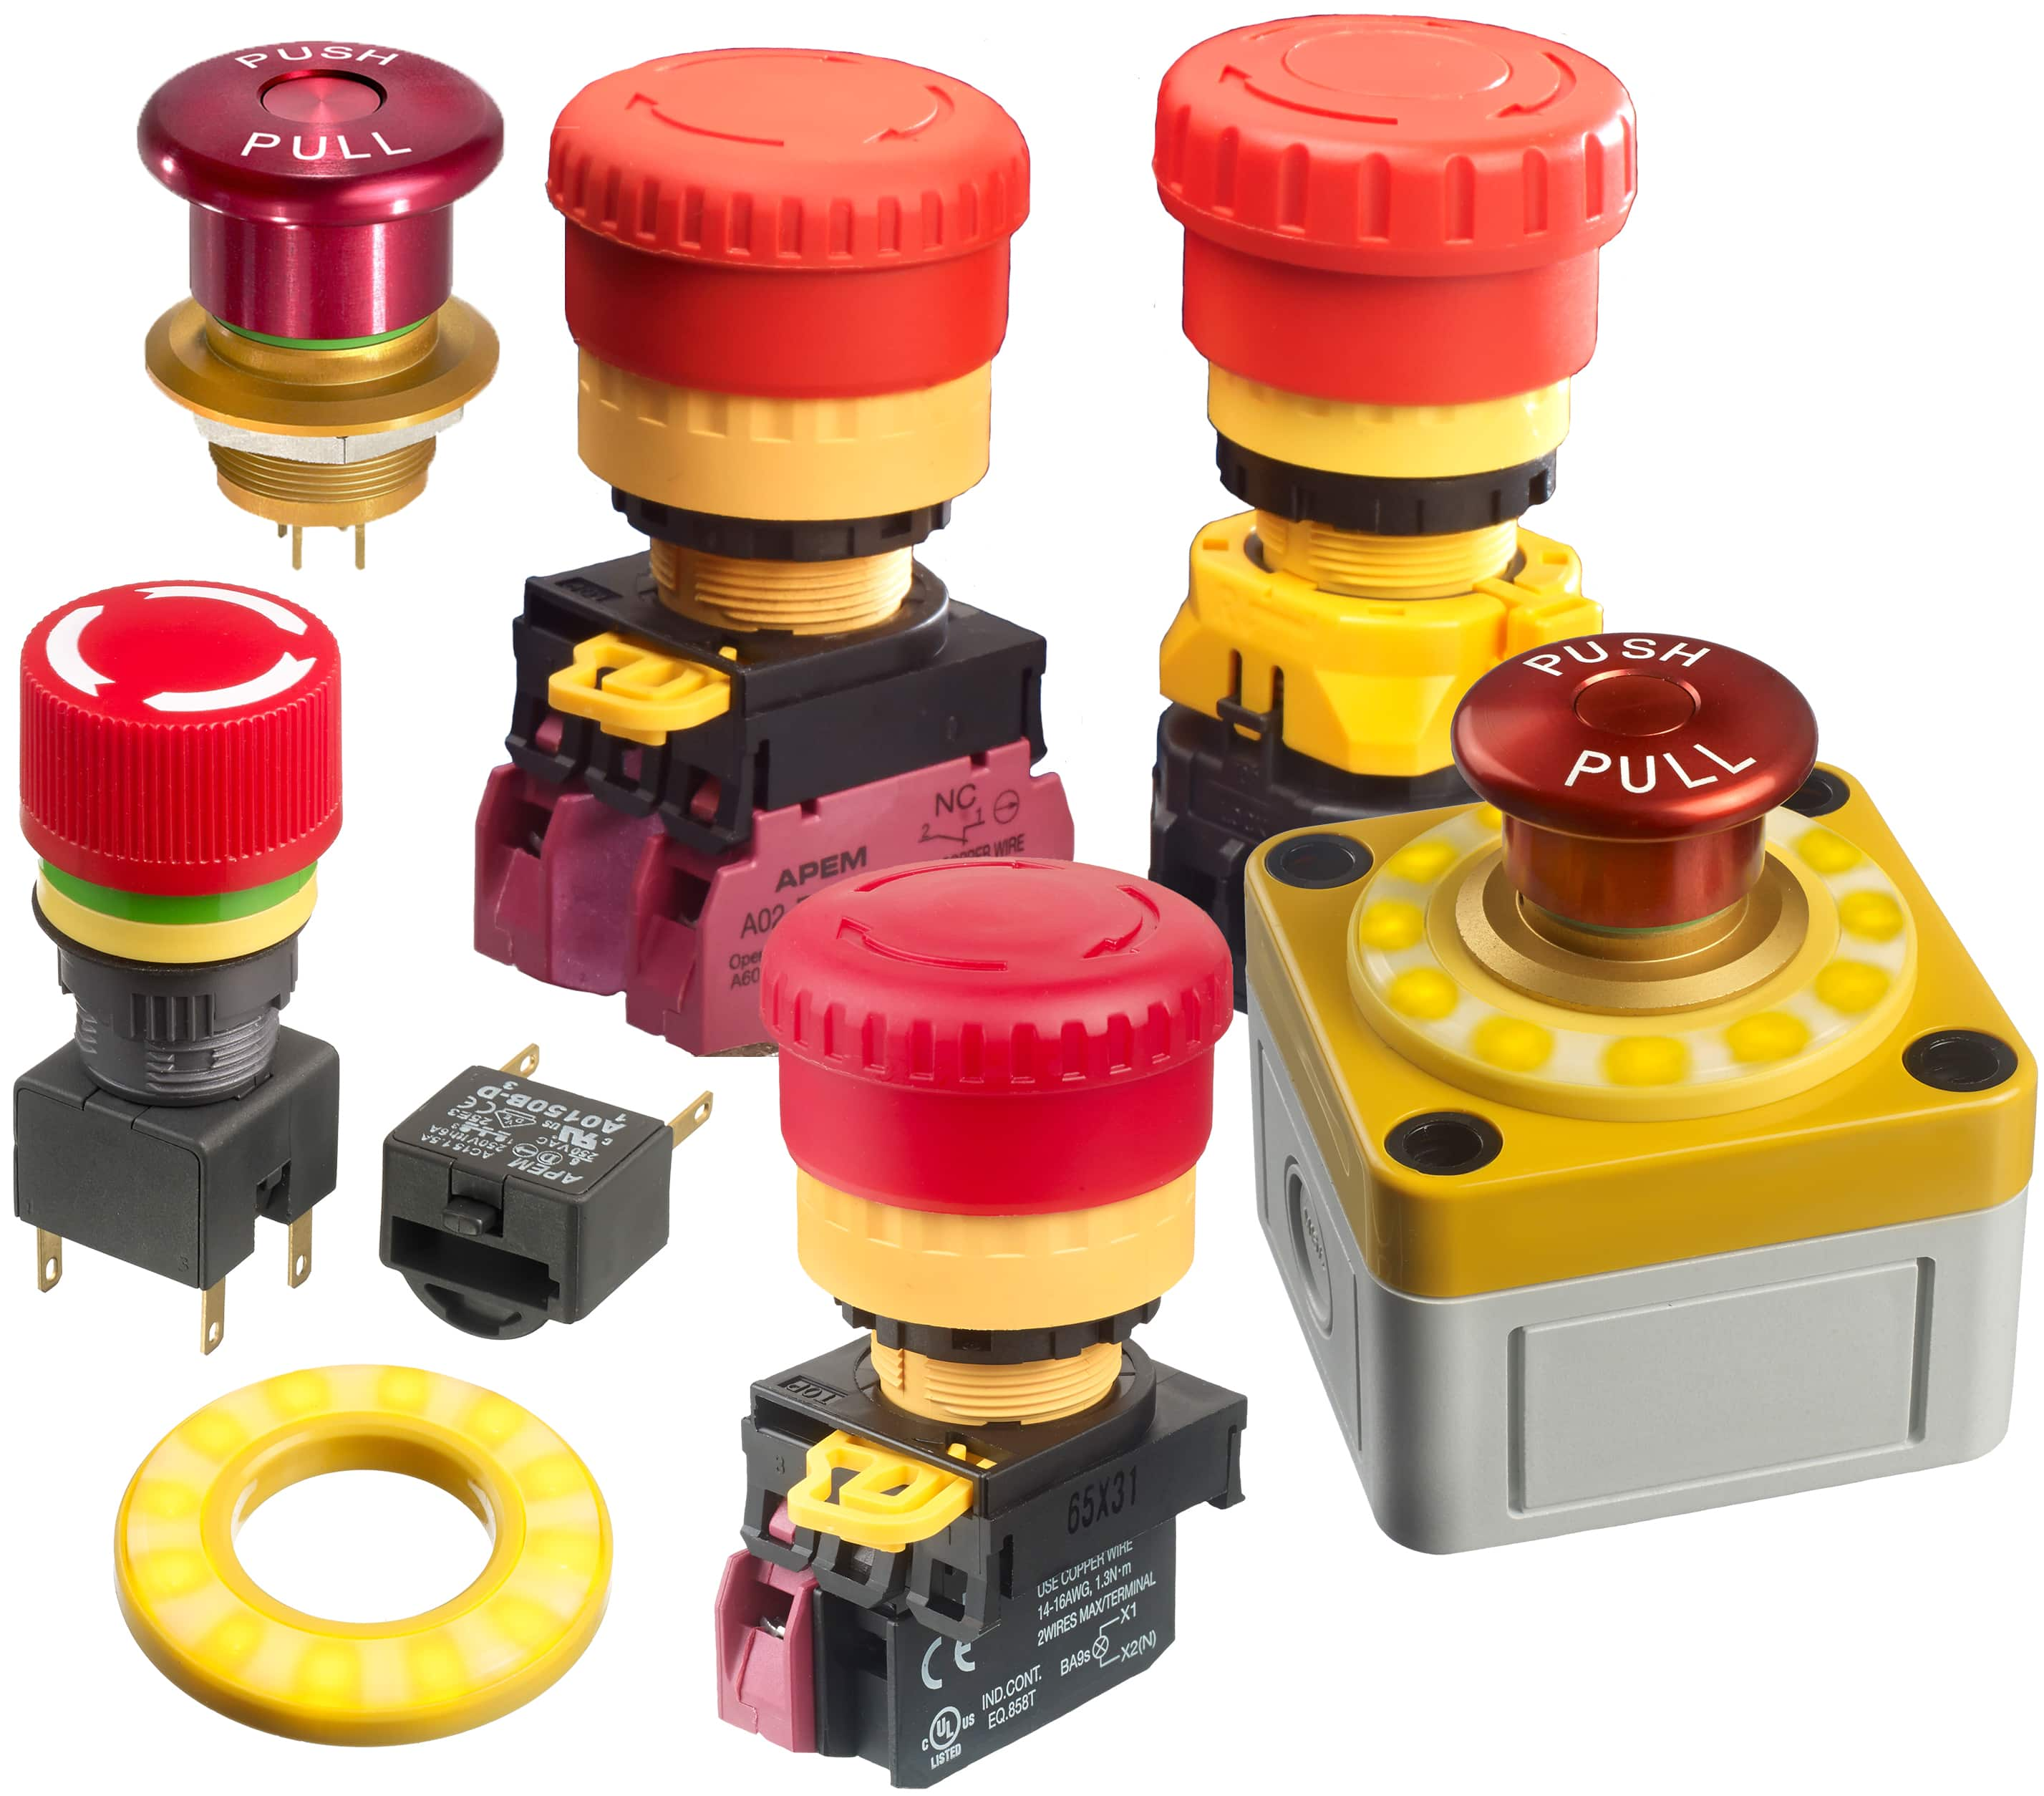 medium resolution of image of apem s emergency stop switches and accessories